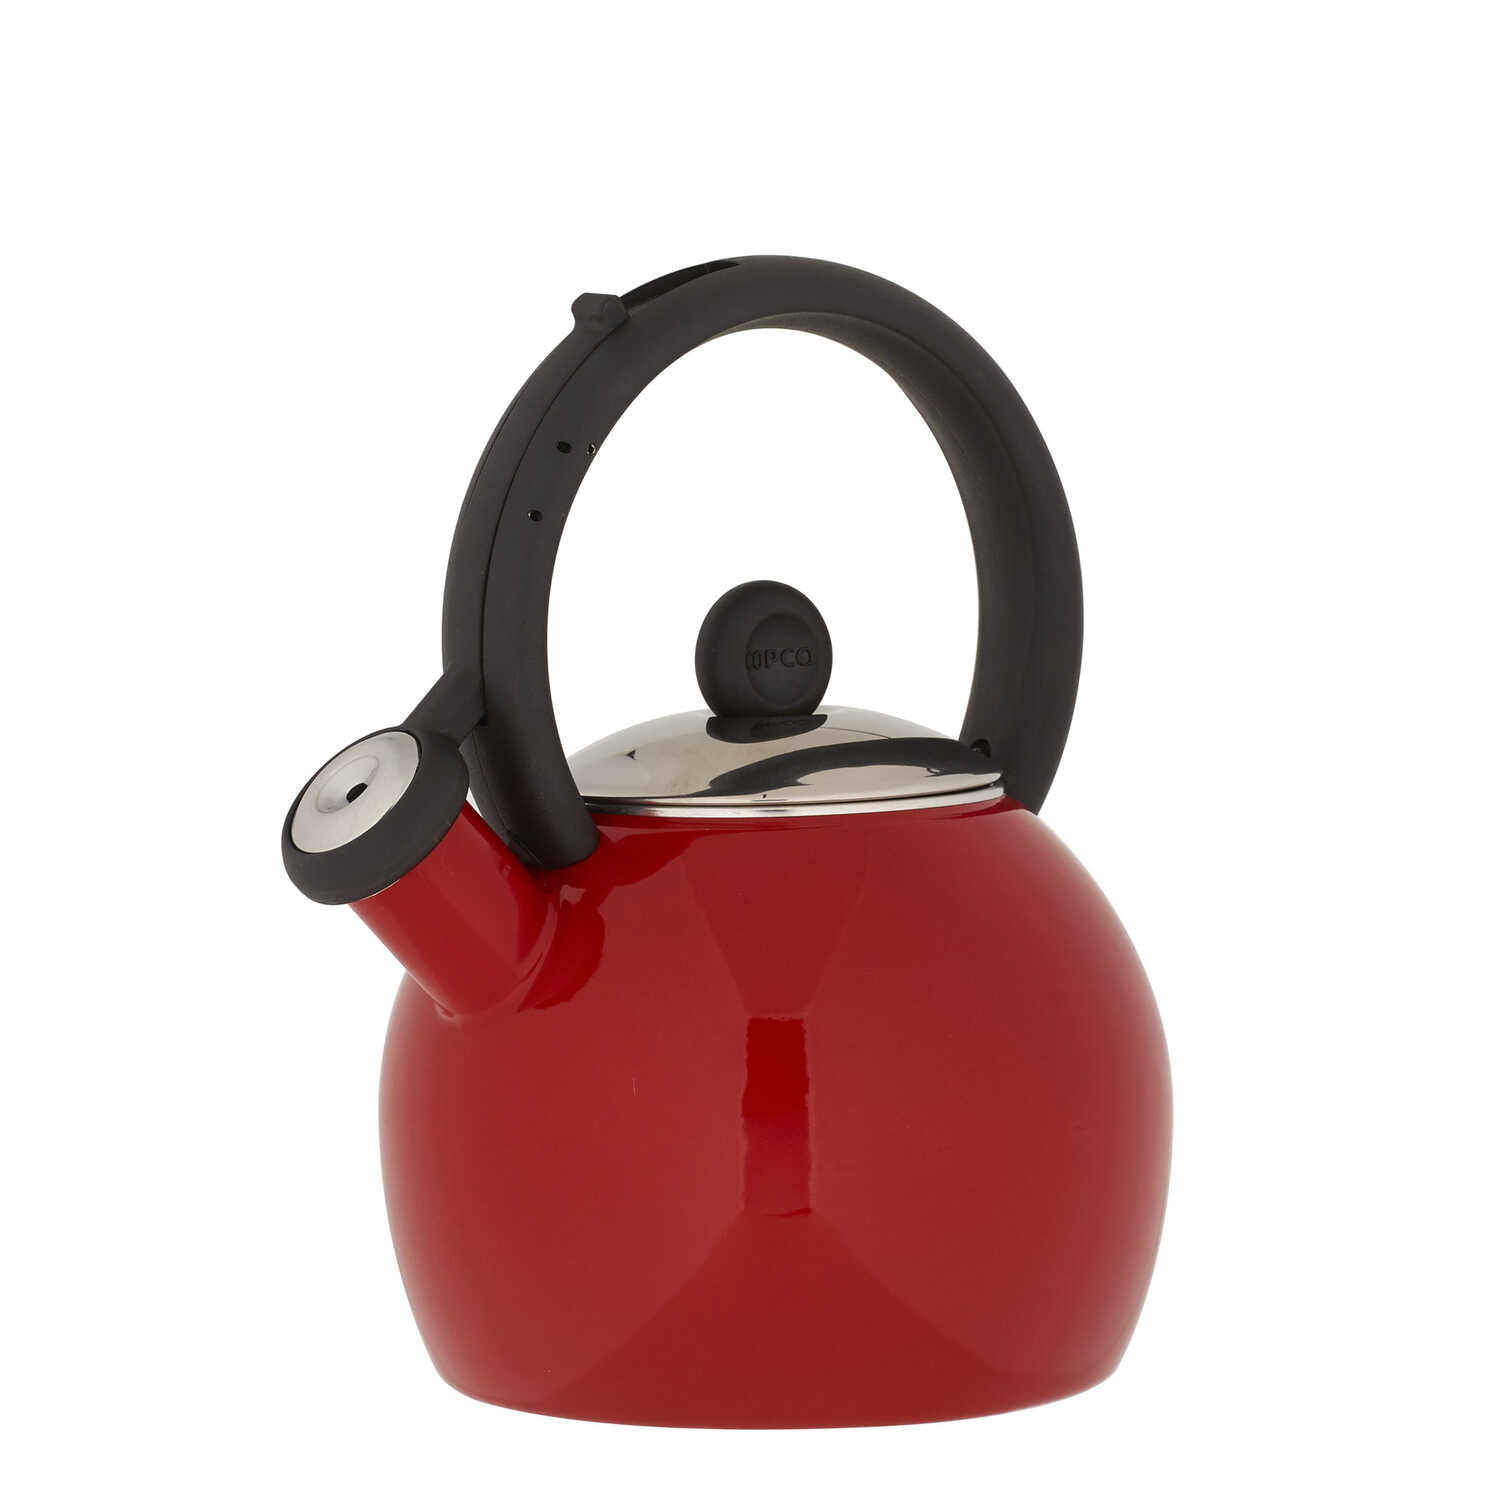 Copco  Vienna  Red  Classic Whistle  Stainless Steel  1-1/2 qt. Tea Kettle